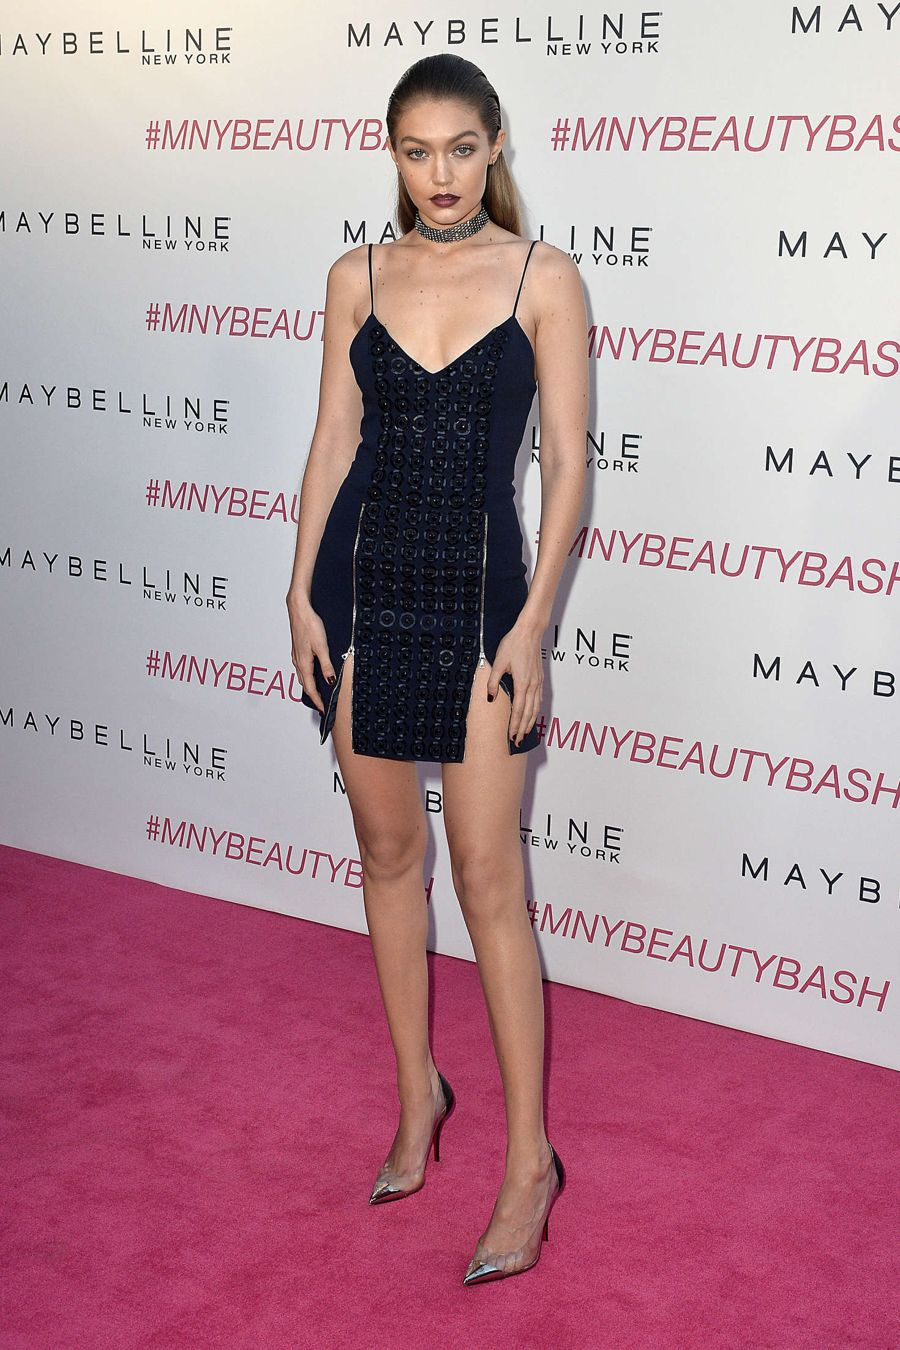 Gigi Hadid - Maybelline New York Beauty Bash in L.A.